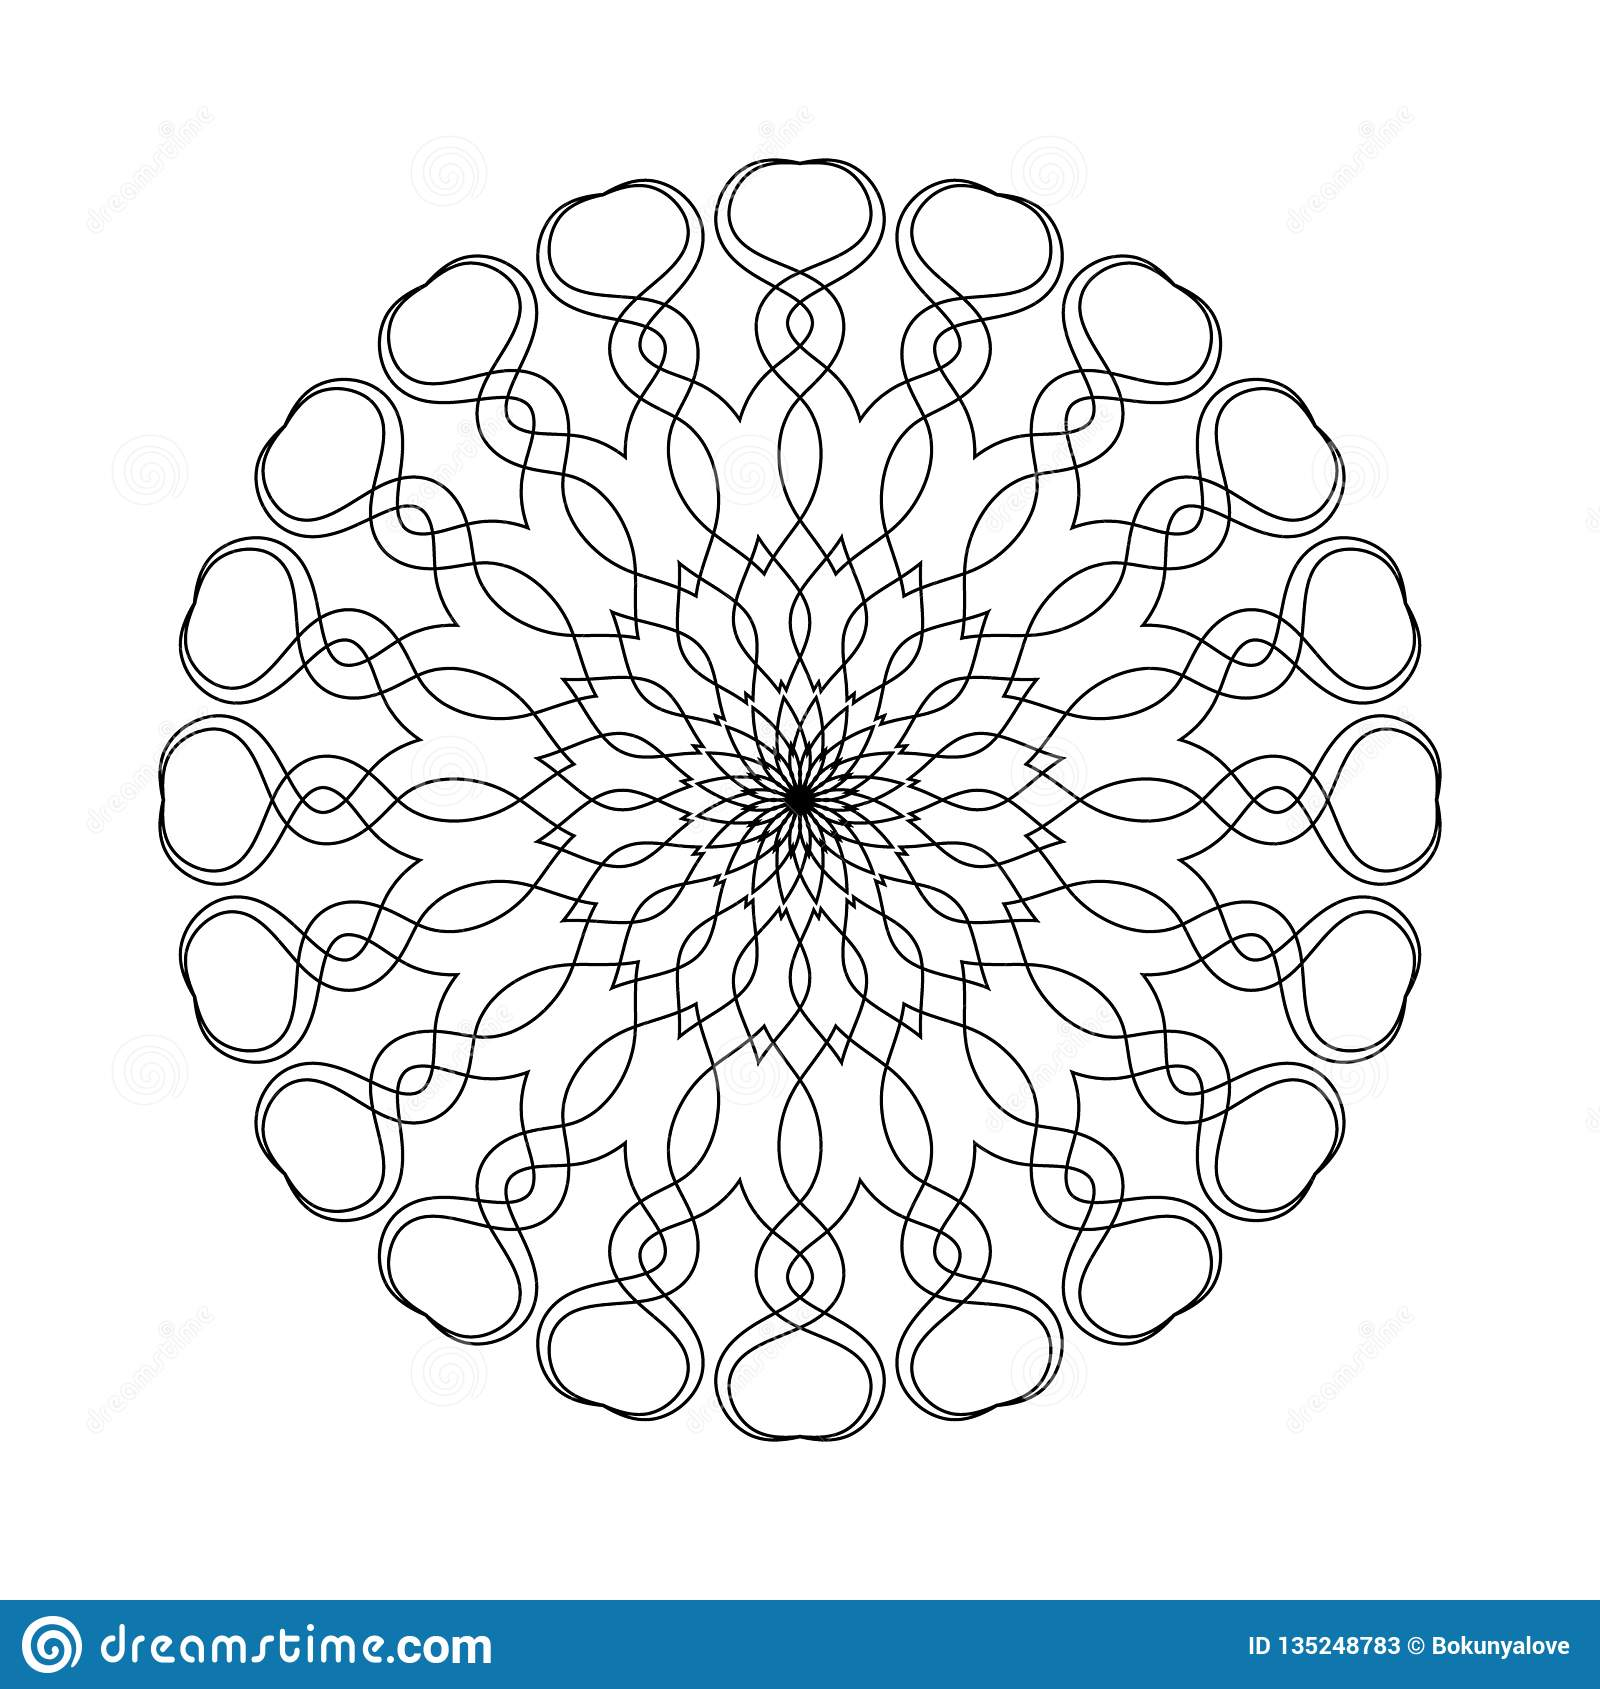 Simple Shape Mandala For Coloring On A White Background